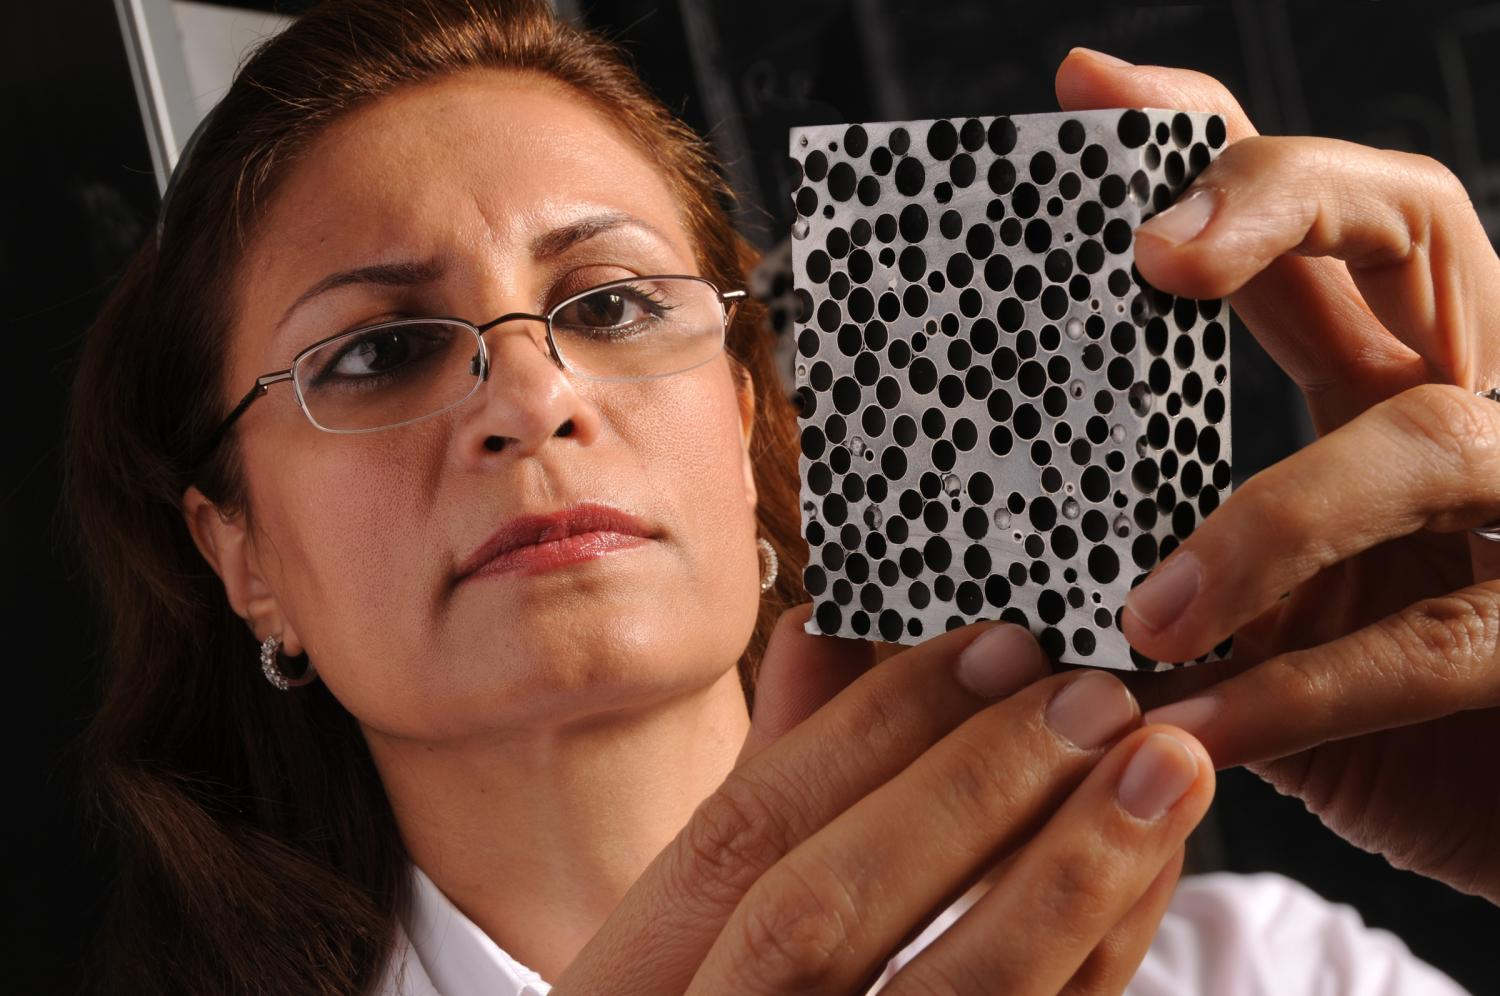 Afsaneh Rabiei examines a sample of metal foam. A new study by Rabiei finds that novel light-weight composite metal foams are significantly more effective at insulating against high heat than the conventional base metals and alloys that they're made of, such as steel. The finding means the CMF is especially promising for use in storing and transporting nuclear material, hazardous materials, explosives and other heat-sensitive materials, as well as for space exploration. (North Carolina State University)